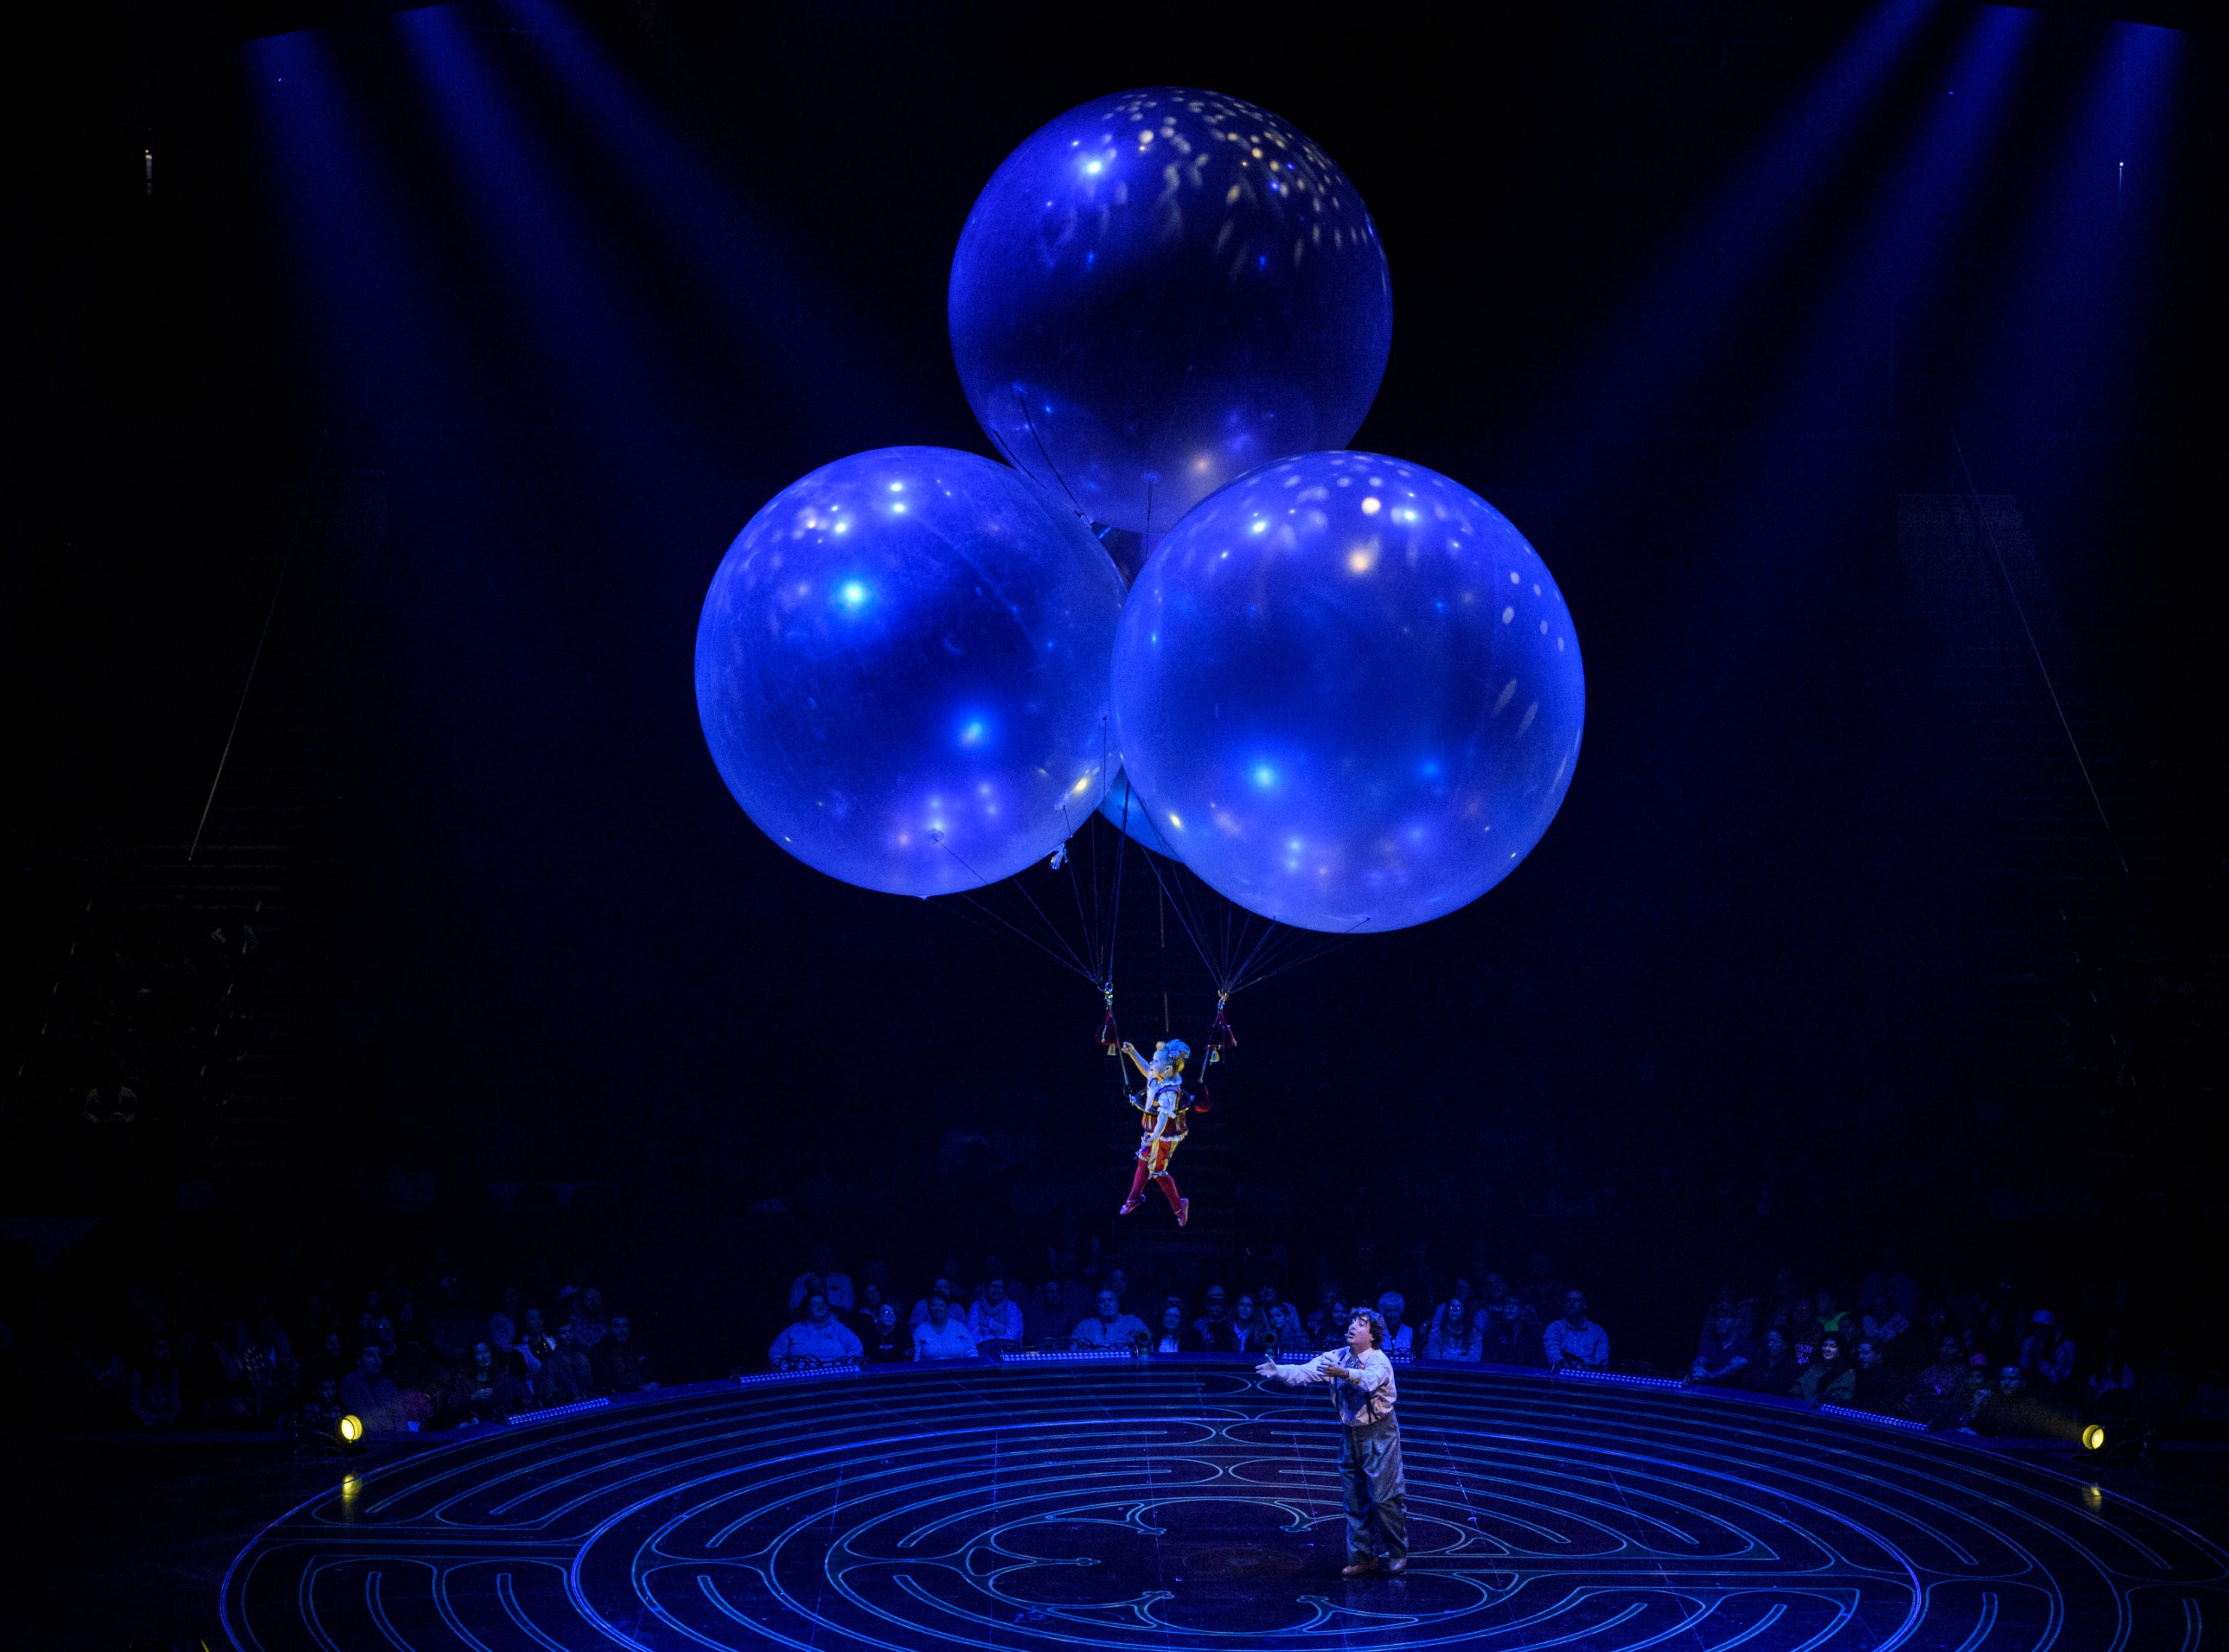 Valentyna Pahlevanyan, top, leaves Mauro the Dreamer Clown, played by Lolo Fernández, bottom, on stage to float around the crowd from three large balloons during Cirque du Soleil's Corteo show at Ford Center in Evansville, Ind., Wednesday night, Jan. 23, 2019.